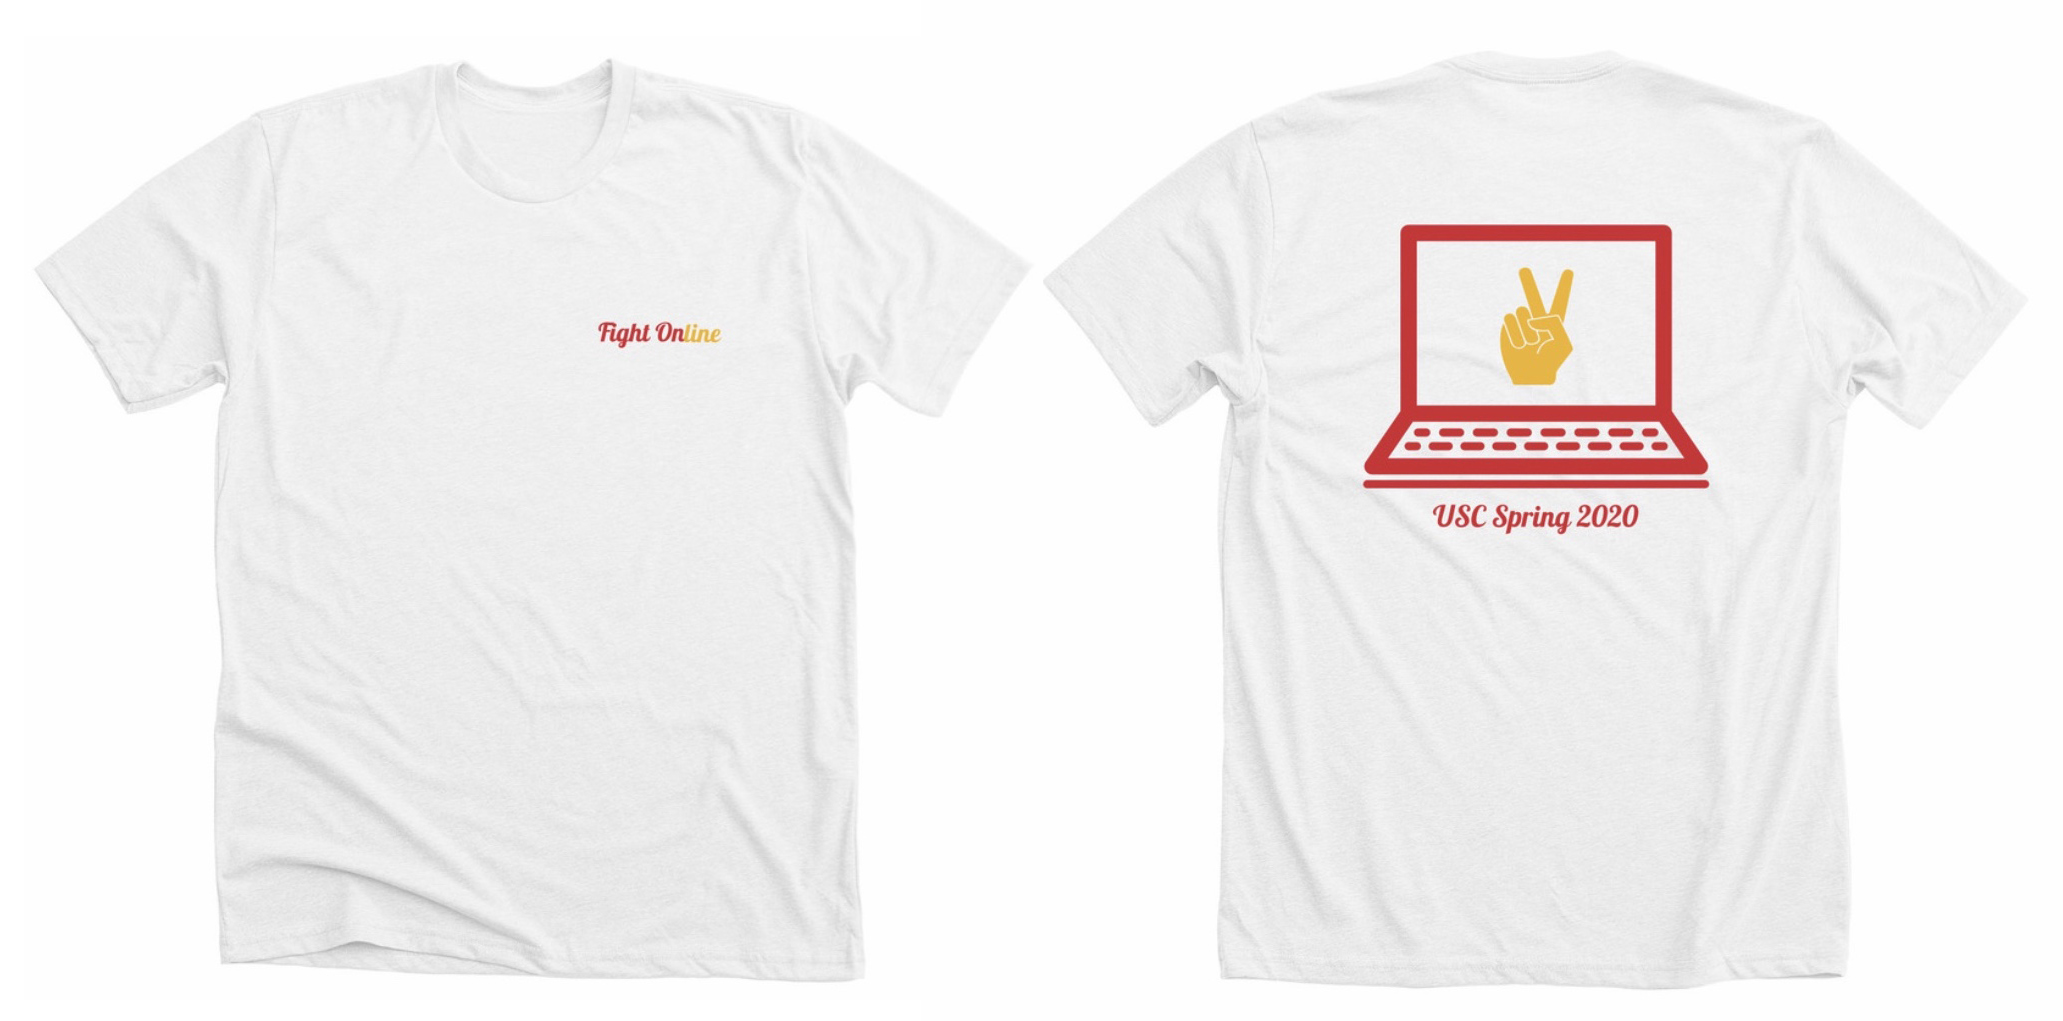 Fight Online T-shirt fundraiser